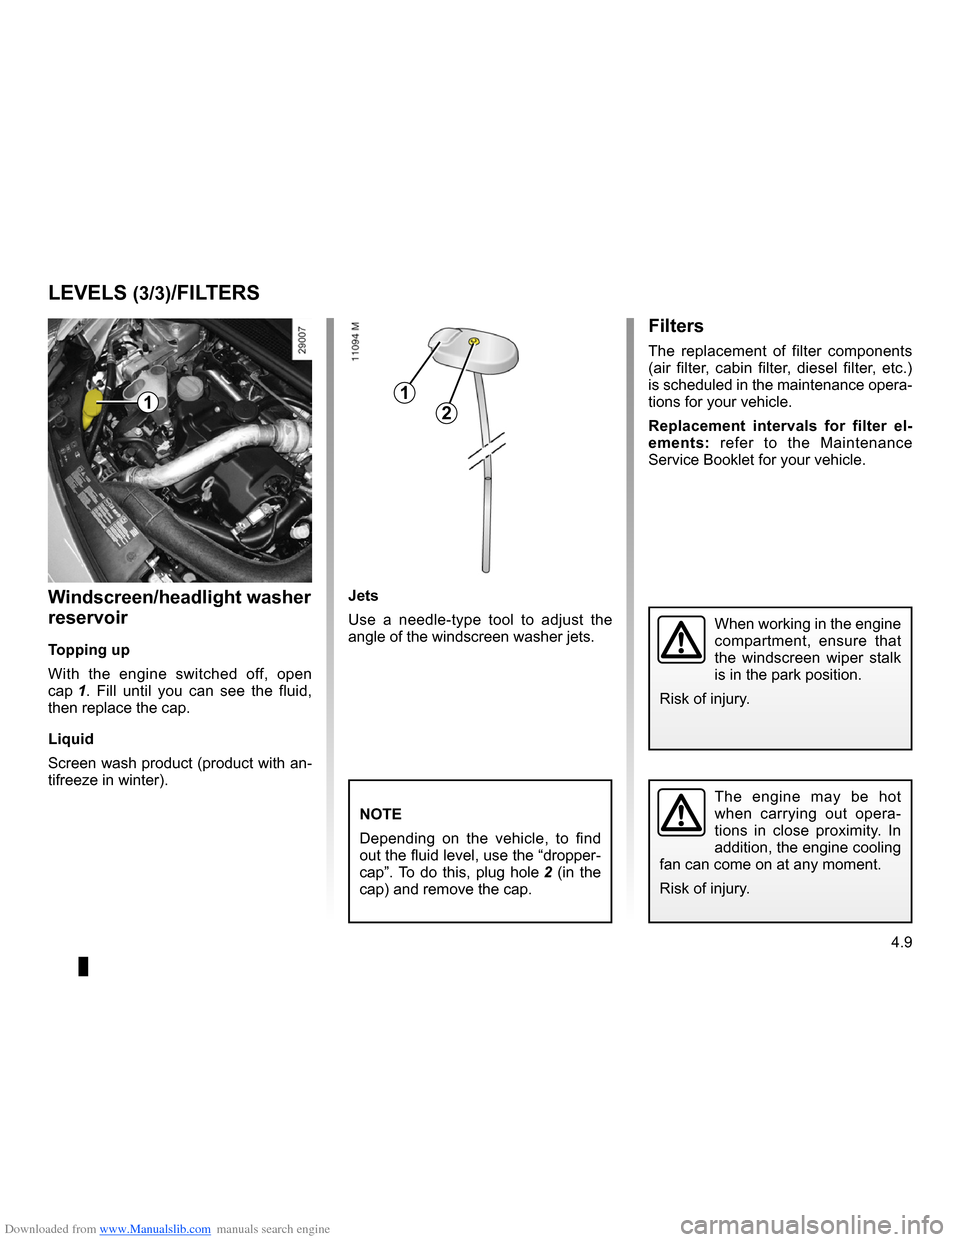 RENAULT CLIO 2009 X85 / 3.G Owners Manual, Page 183